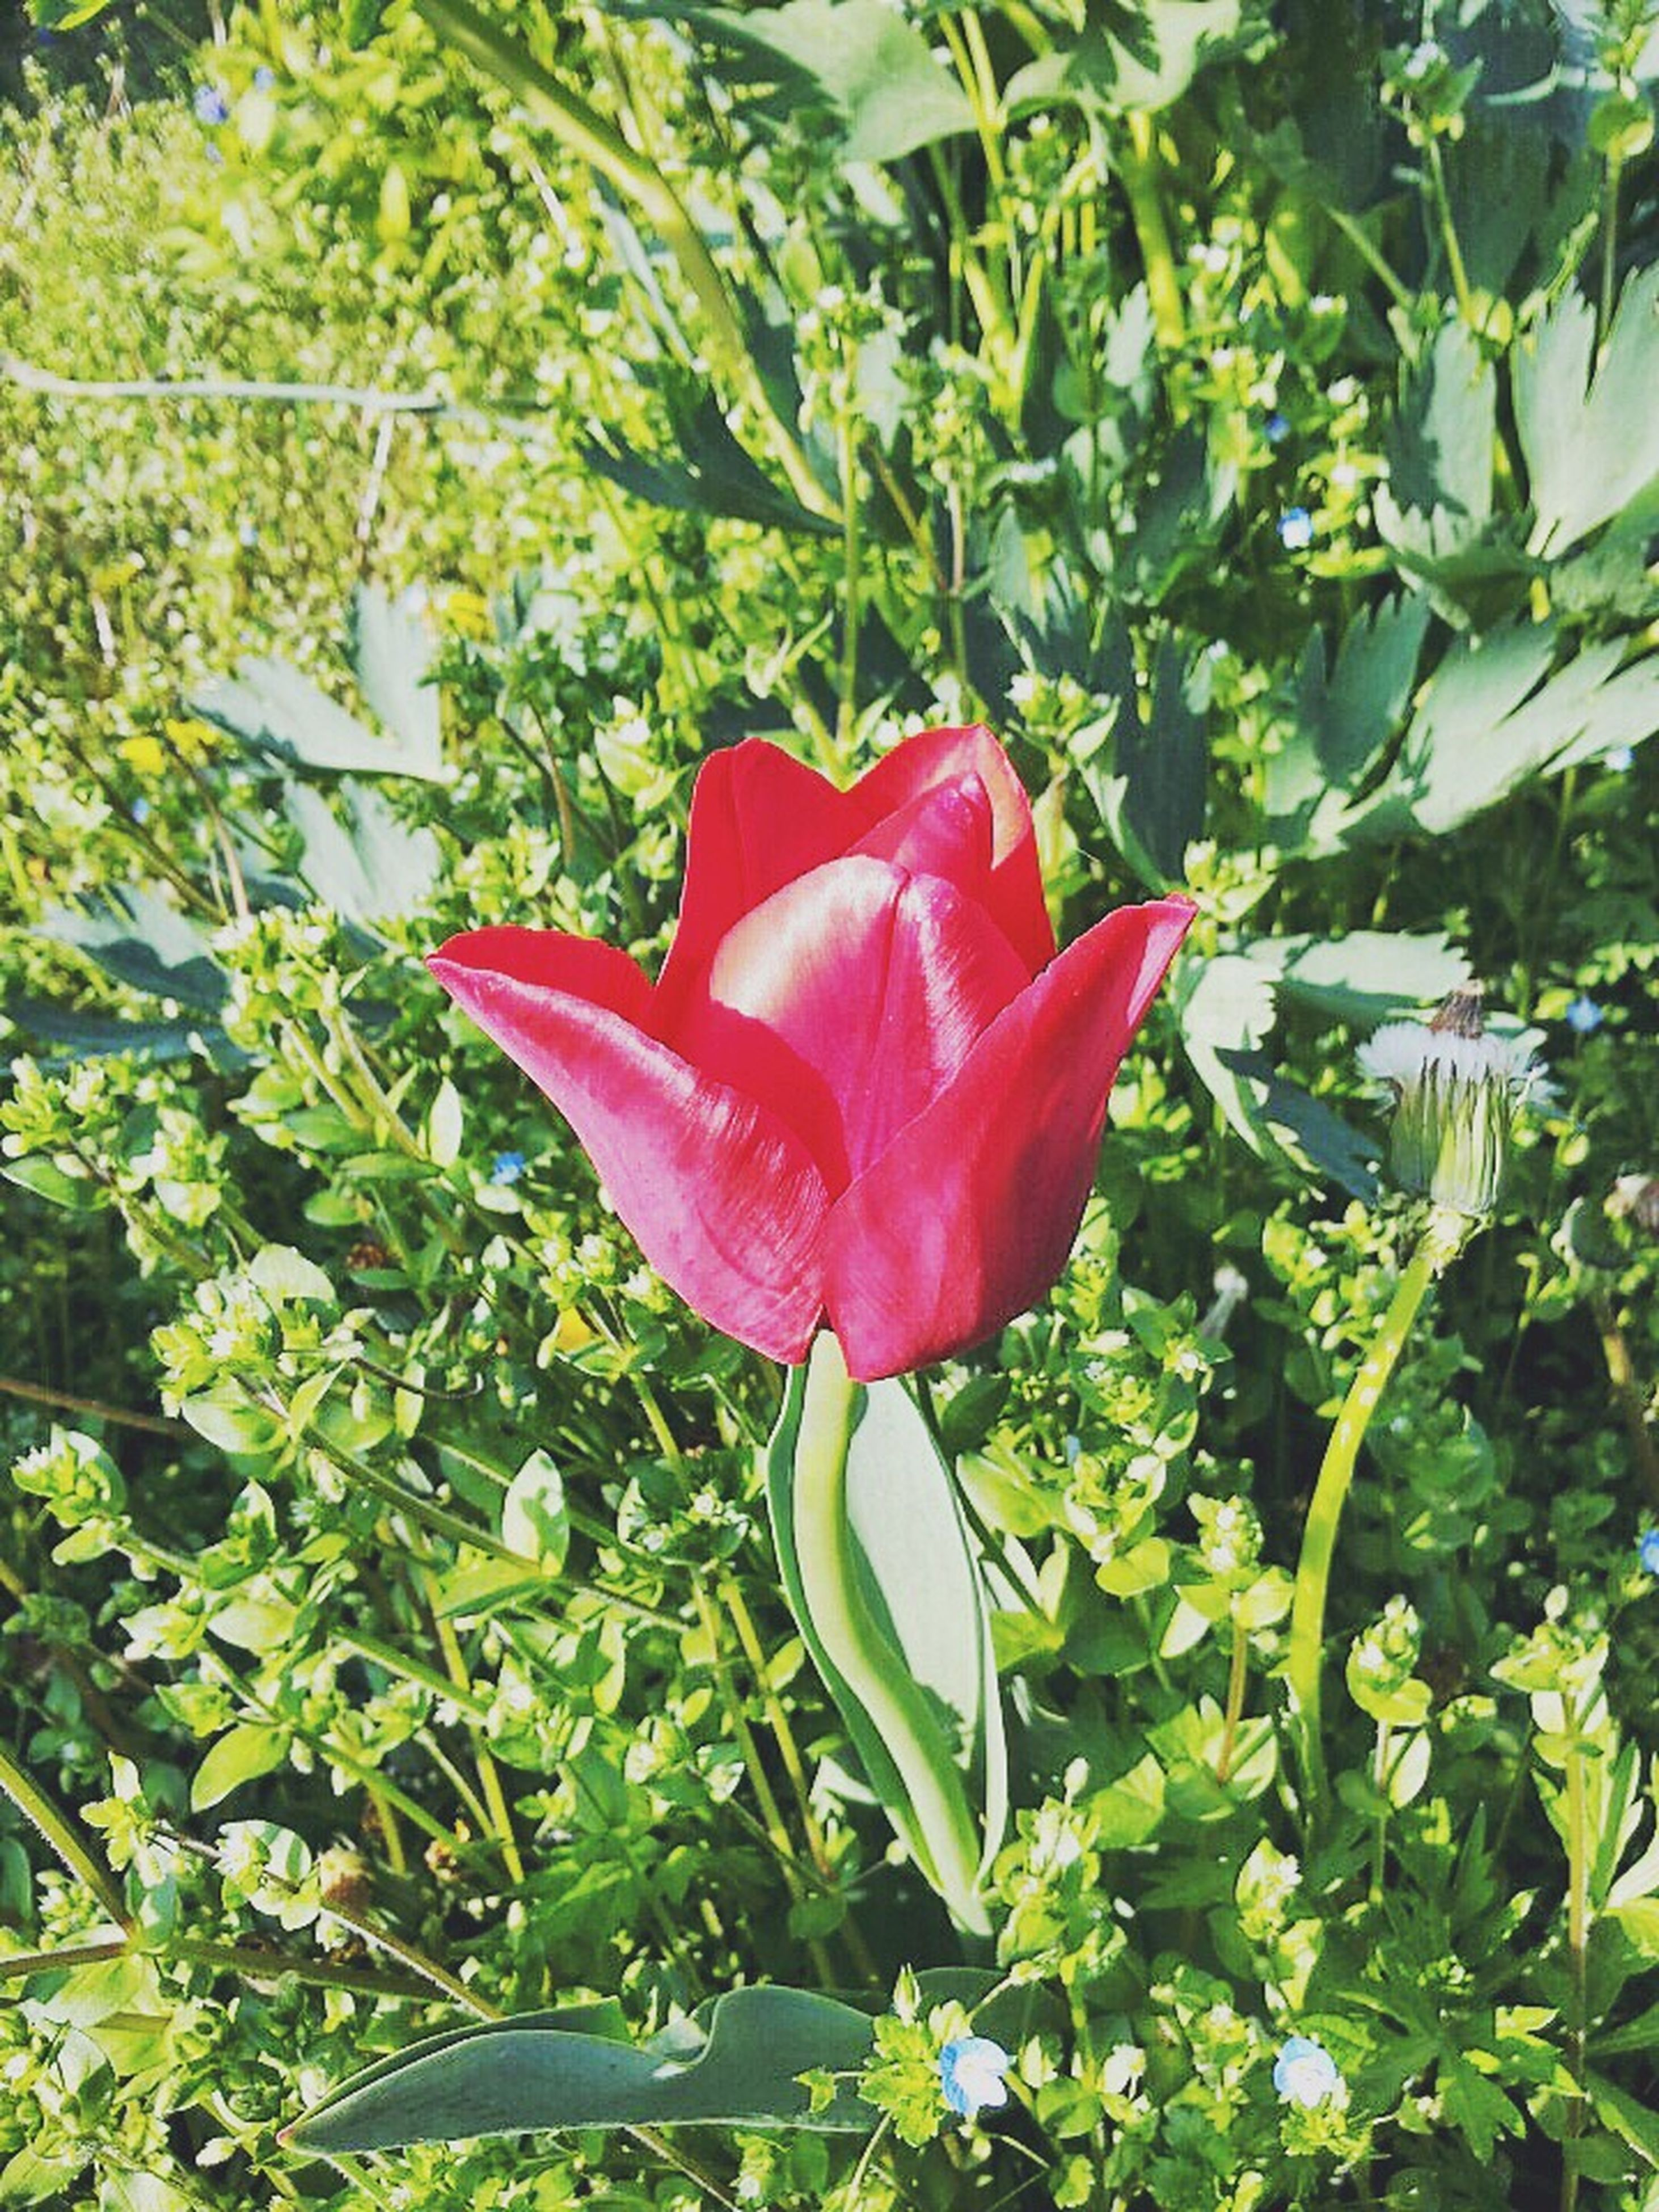 flower, petal, red, growth, freshness, flower head, fragility, plant, leaf, beauty in nature, green color, nature, blooming, single flower, close-up, day, no people, in bloom, blossom, outdoors